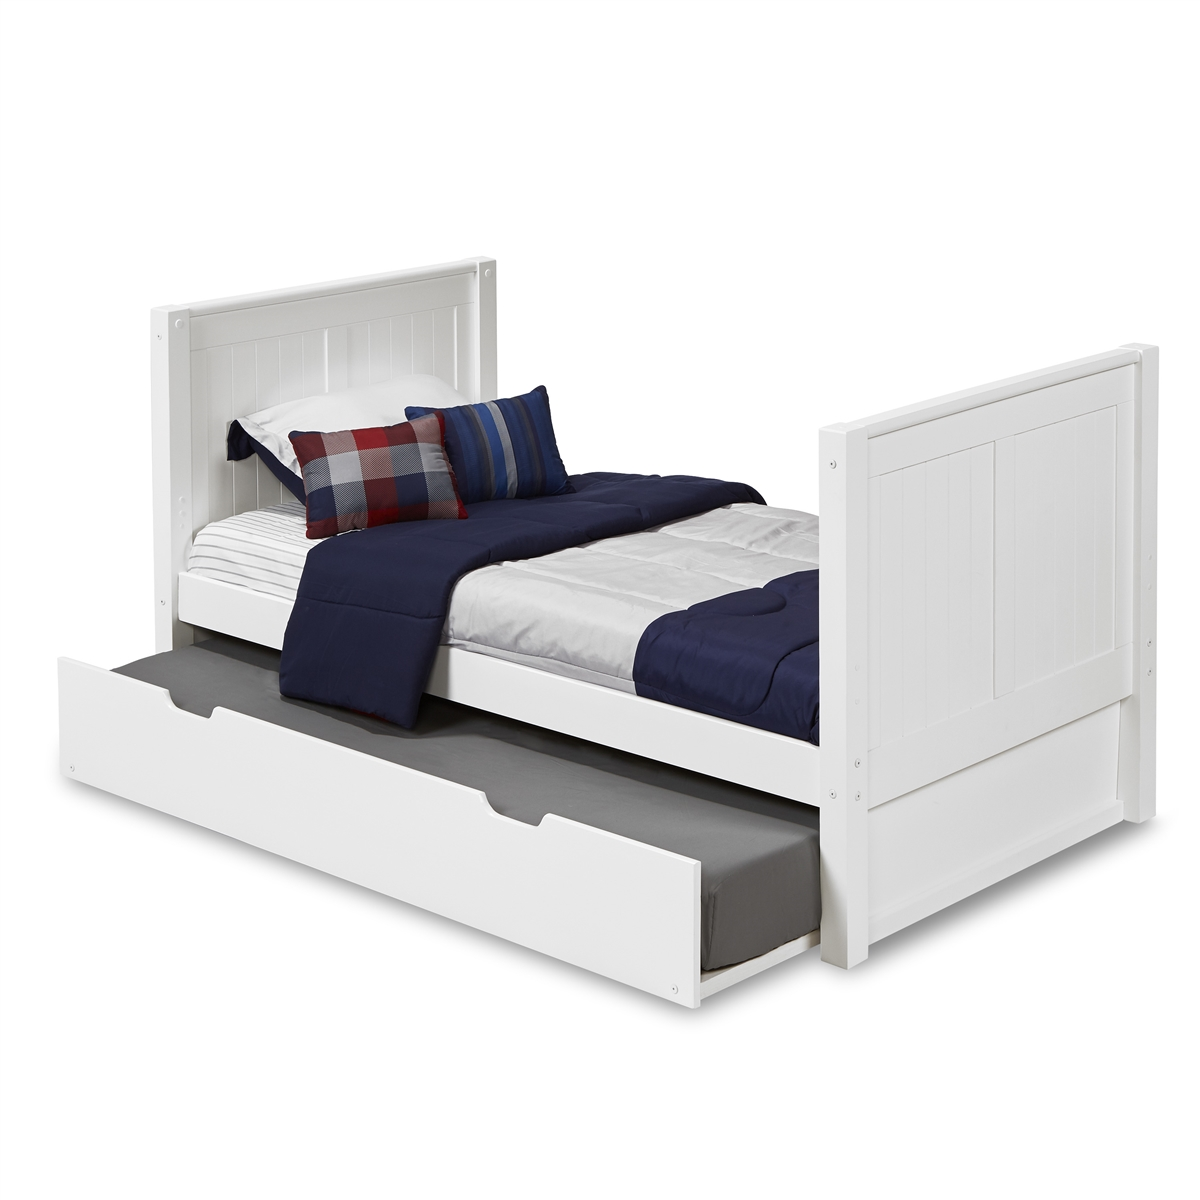 twin platform bed with trundle. Camaflexi Twin Tall Platform Bed With Trundle Larger Photo Twin Platform Bed Trundle